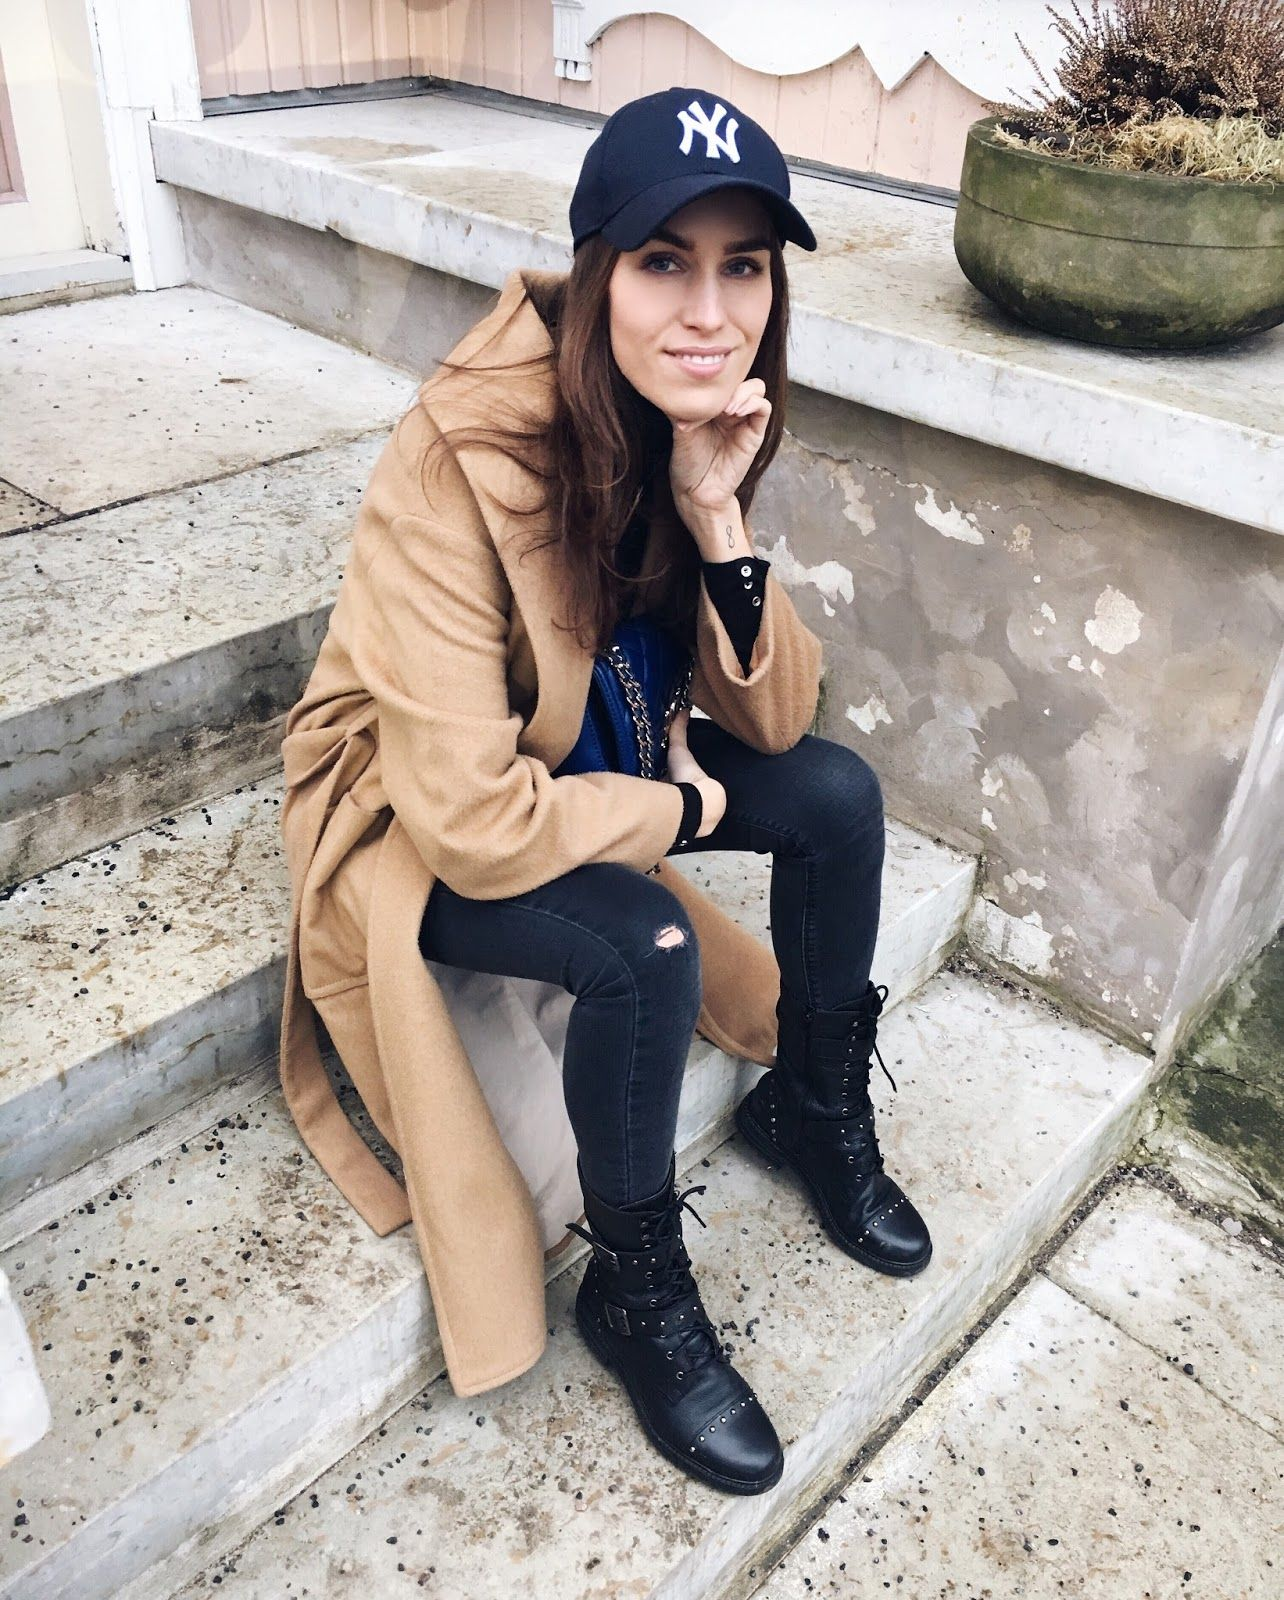 Yankees Cap Winter Outfit Instagram Outfits Outfits Winter Outfit Inspiration